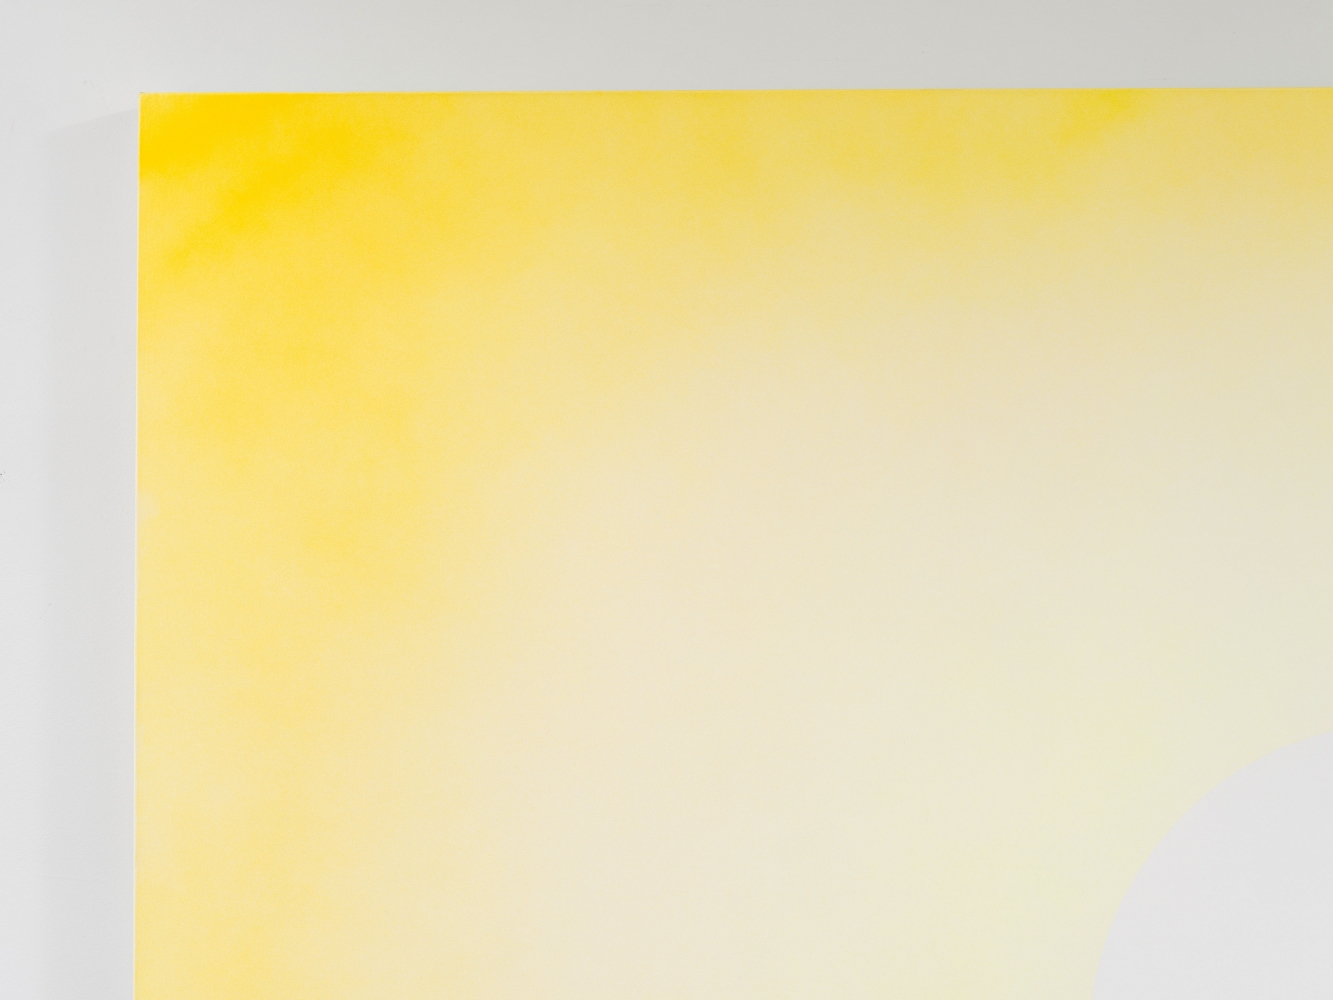 """Rob Reynolds  """"Sun 1,"""" 2018  Oil, alkyd and acrylic polymer paint on canvas,  80 x 100 inches, detail view"""